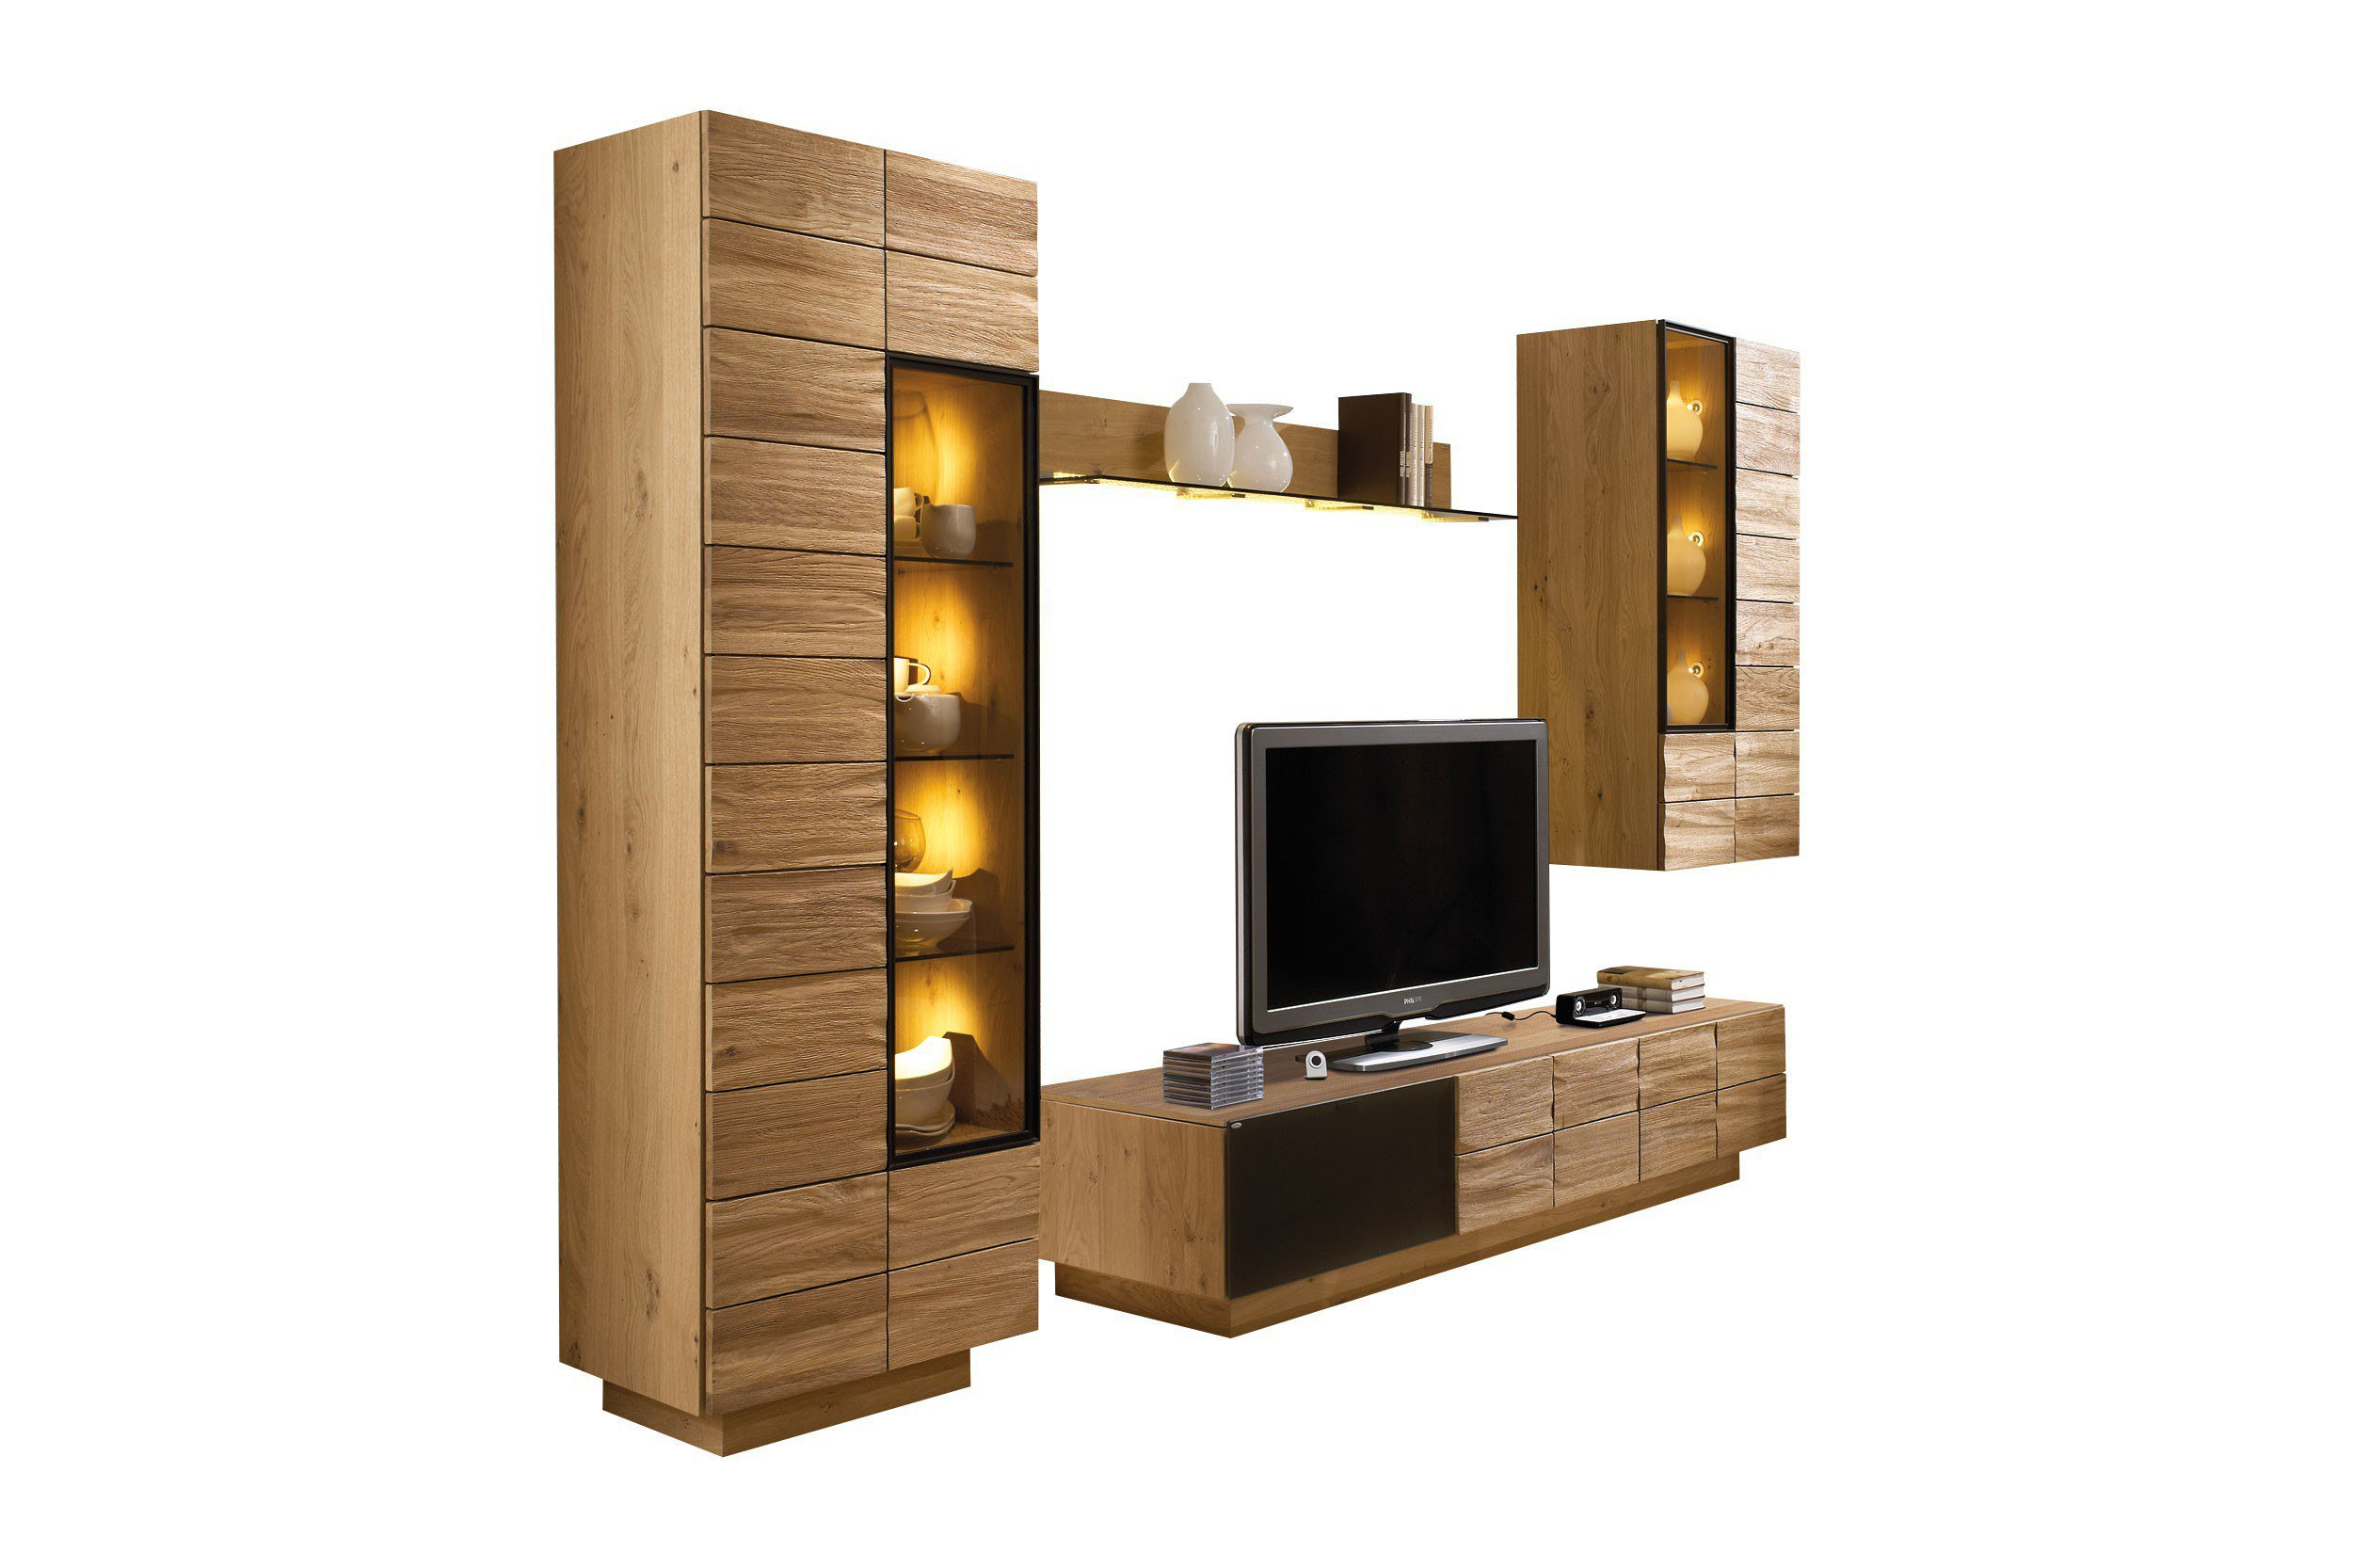 voglauer wohnwand v montana 173 wildeiche braun m bel. Black Bedroom Furniture Sets. Home Design Ideas